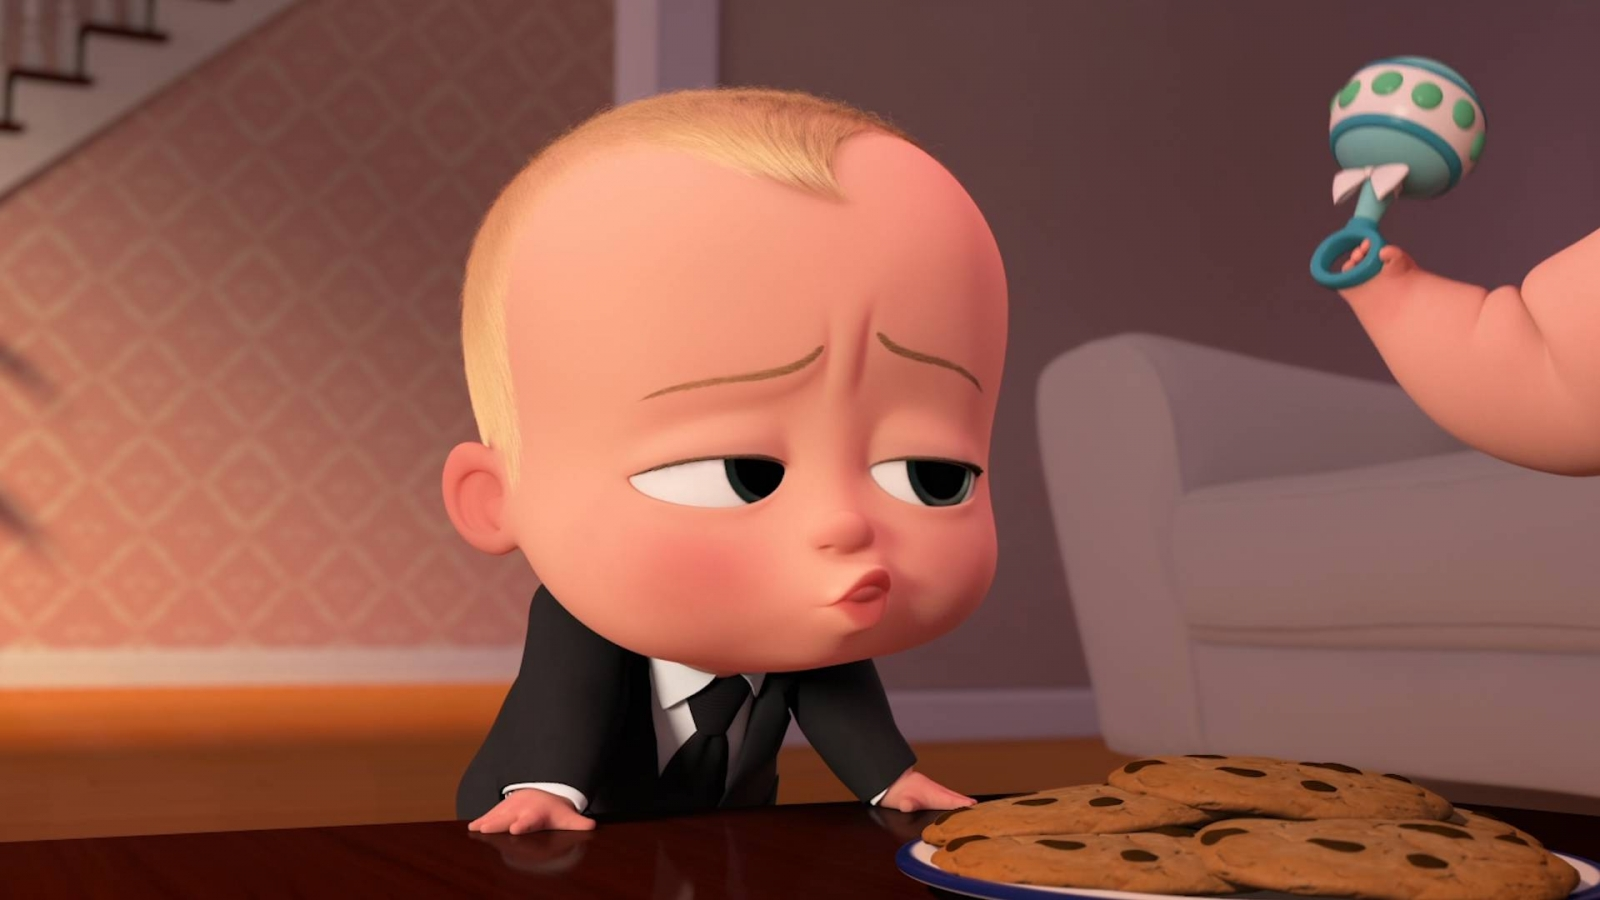 the boss baby is nominated for an oscar and nobody can